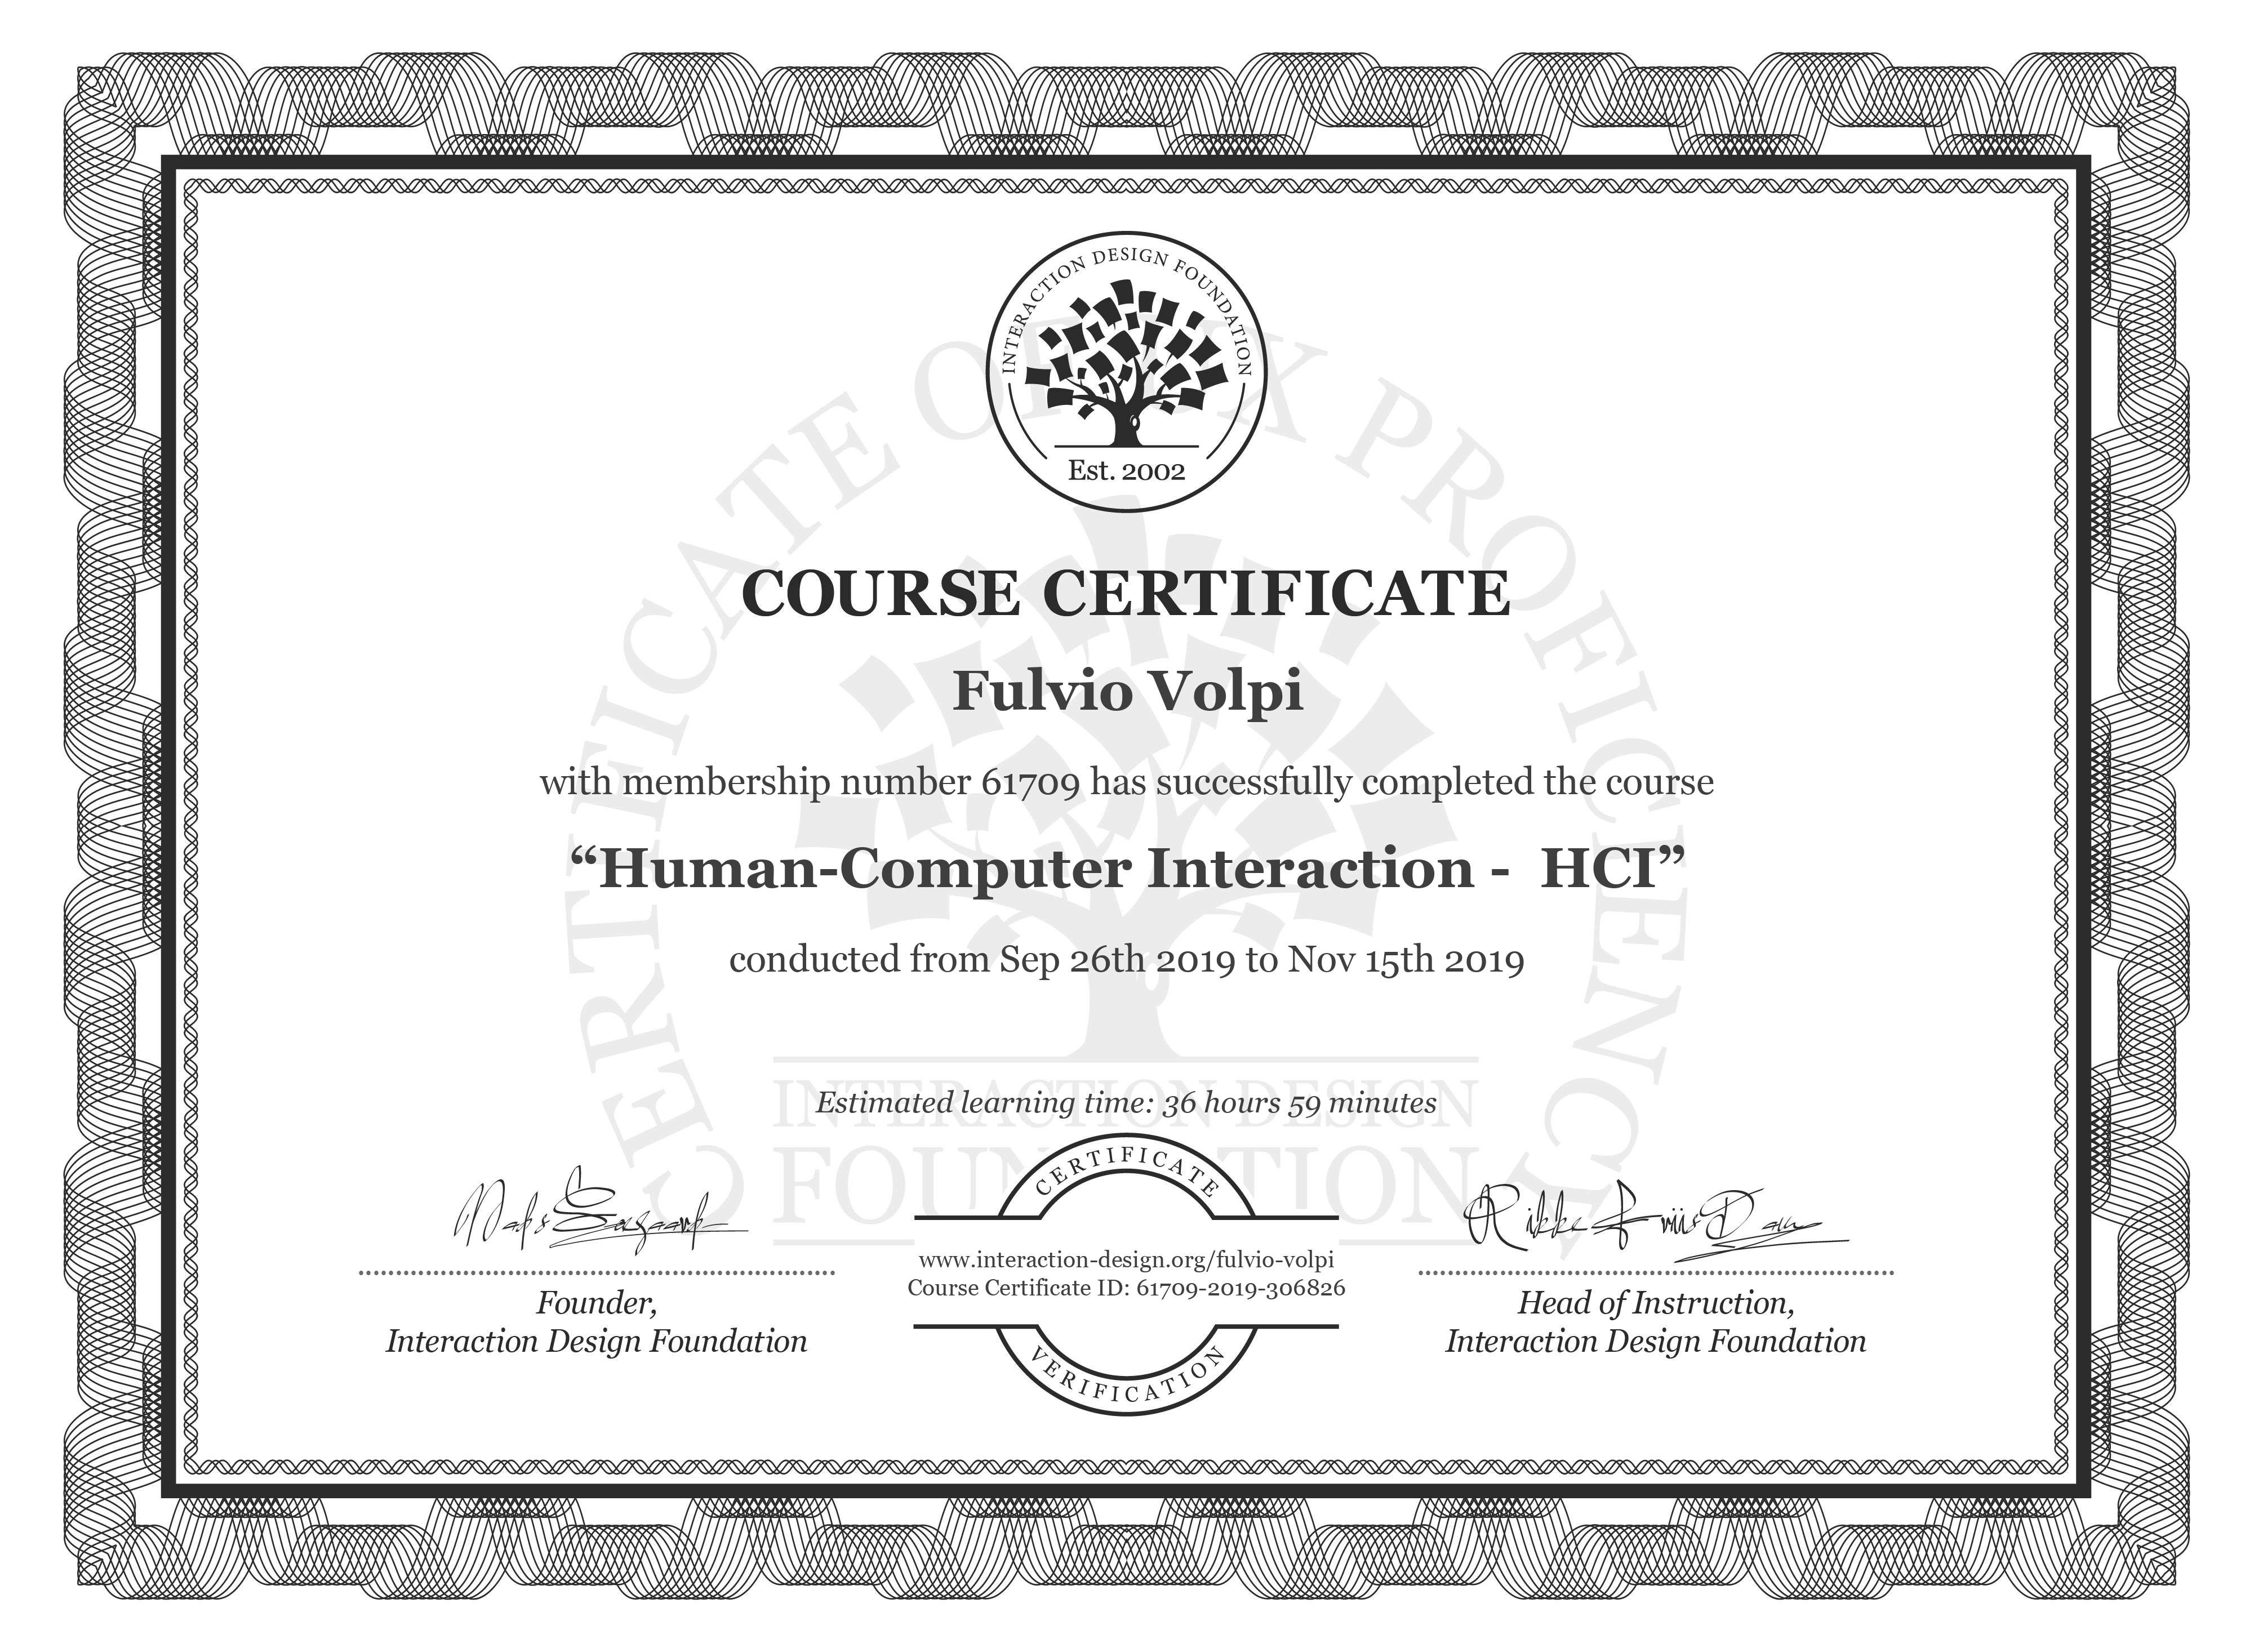 Fulvio Volpi's Course Certificate: Human-Computer Interaction -  HCI